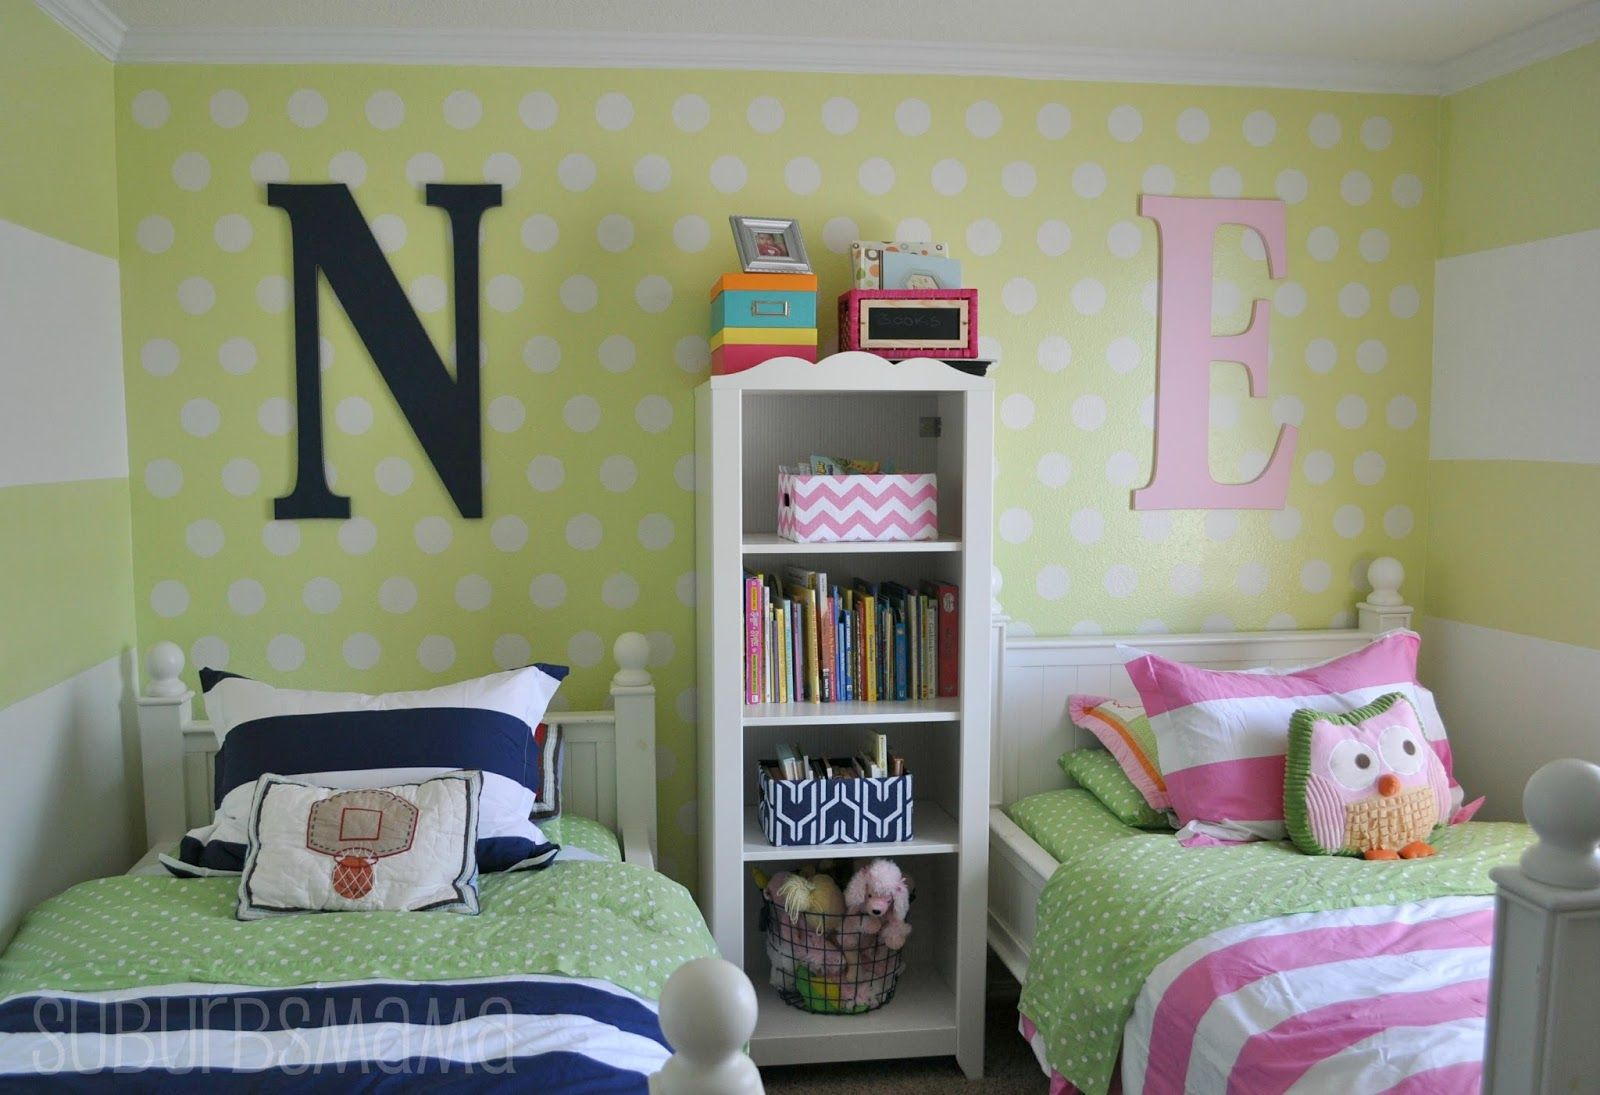 shared boy girl idea bedding. shared boy girl idea bedding   Kid s Room   Pinterest   Minimalist